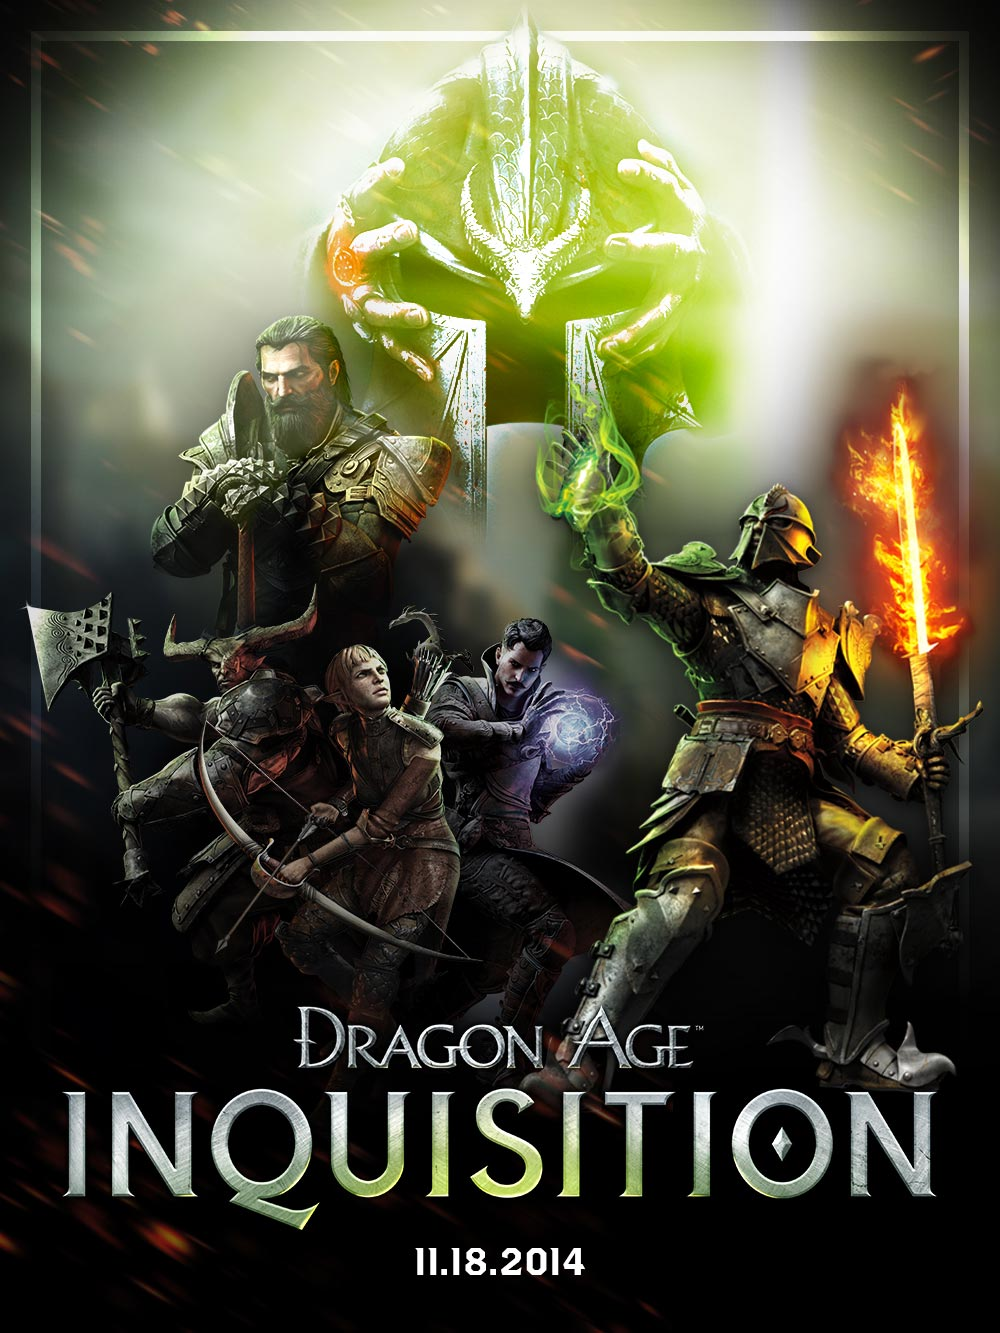 Dragon Age: Inquisition (answer to the secret question)